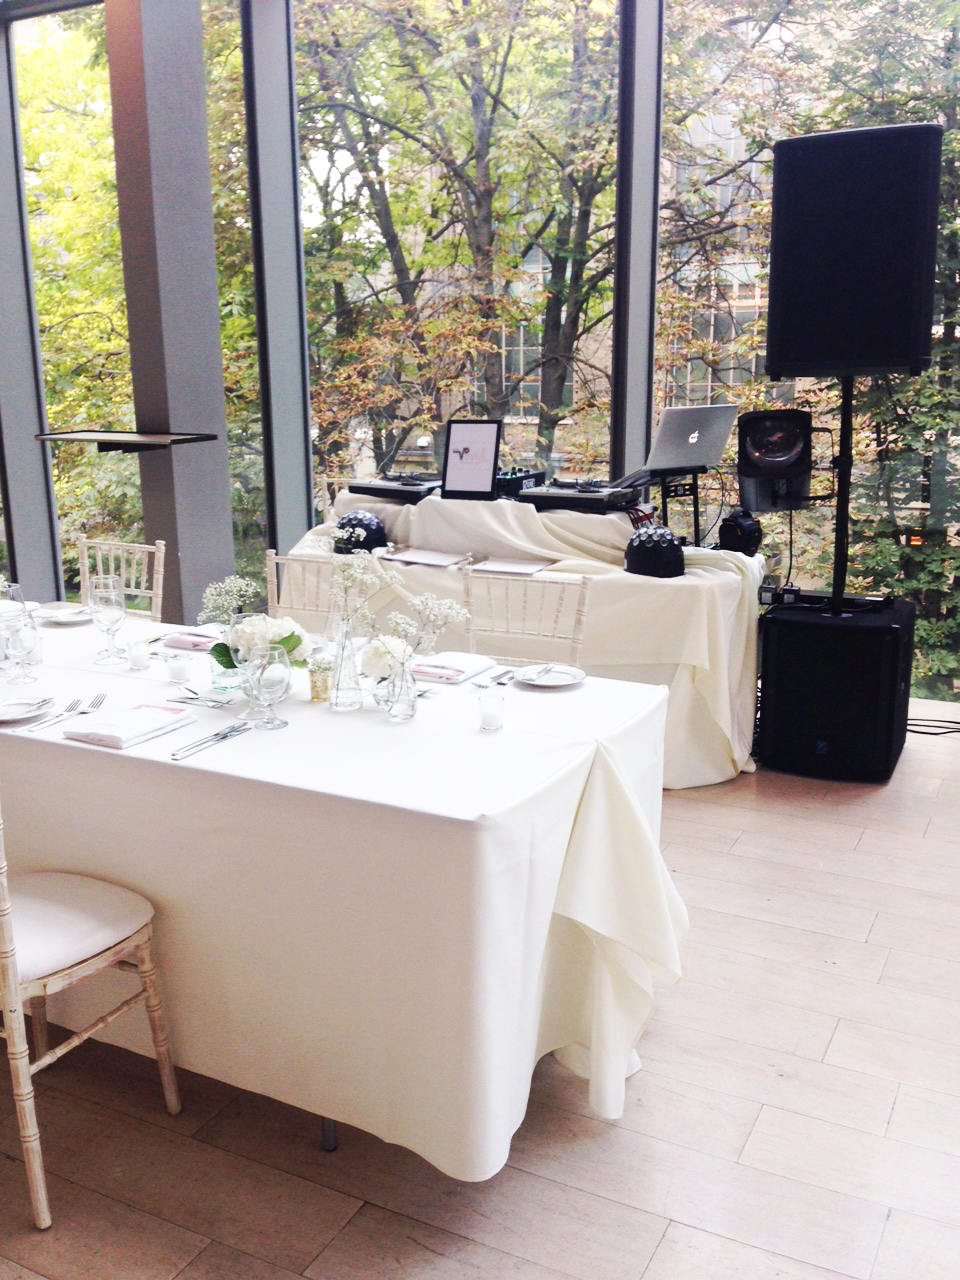 dj setup Royal Conservatory of Music wedding .jpg